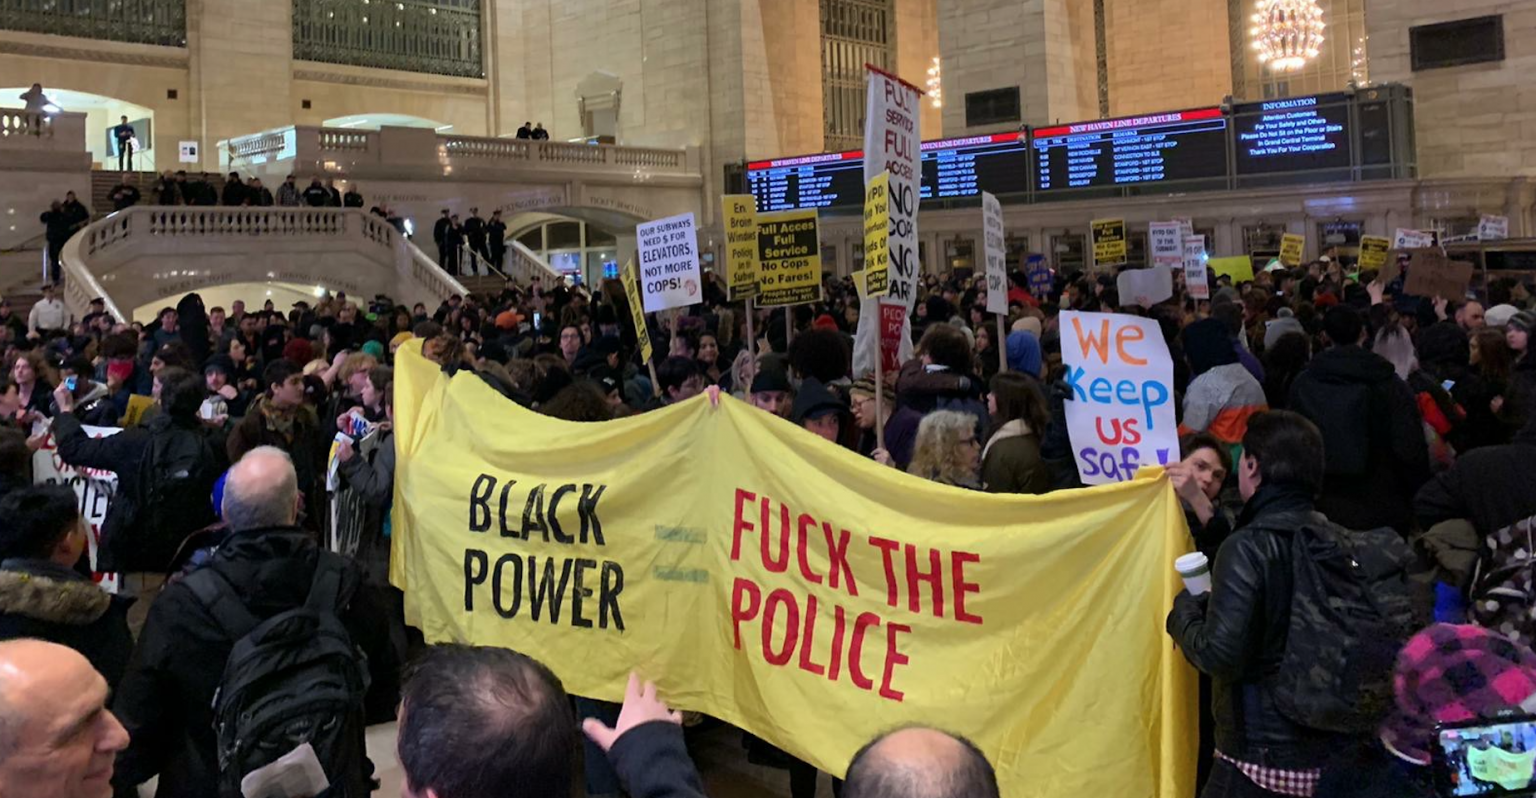 Anarchists spark riots, vandalism at Grand Central - shutting down trains and causing mayhem